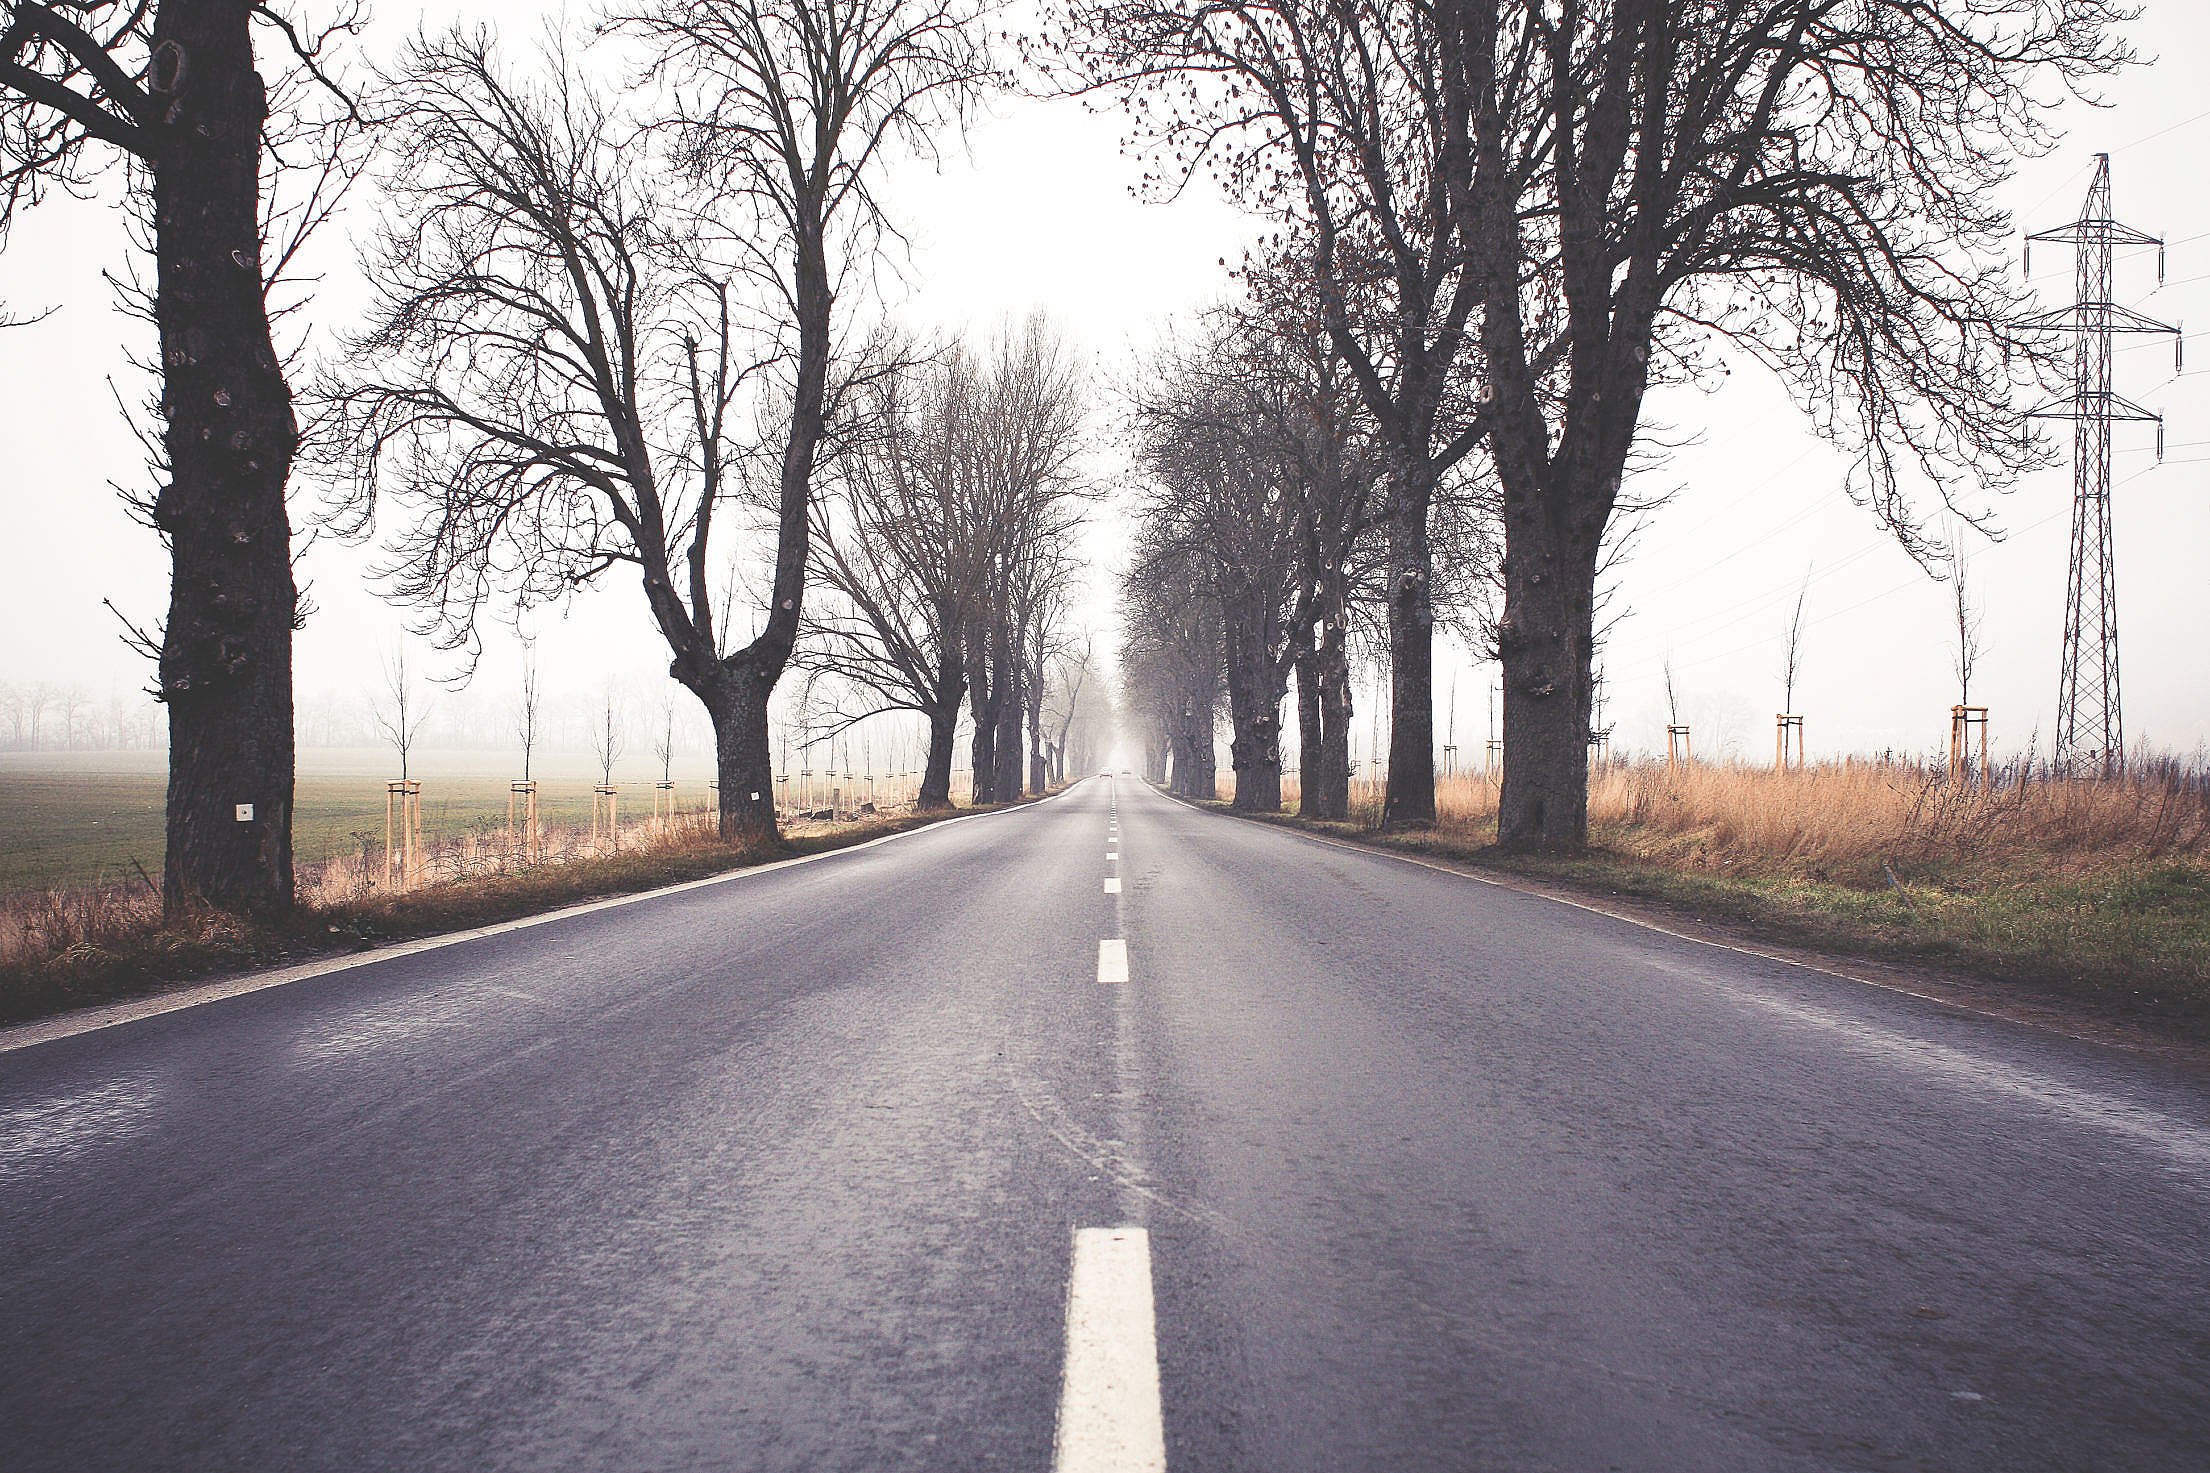 Foggy Winter Road Free Stock Photo